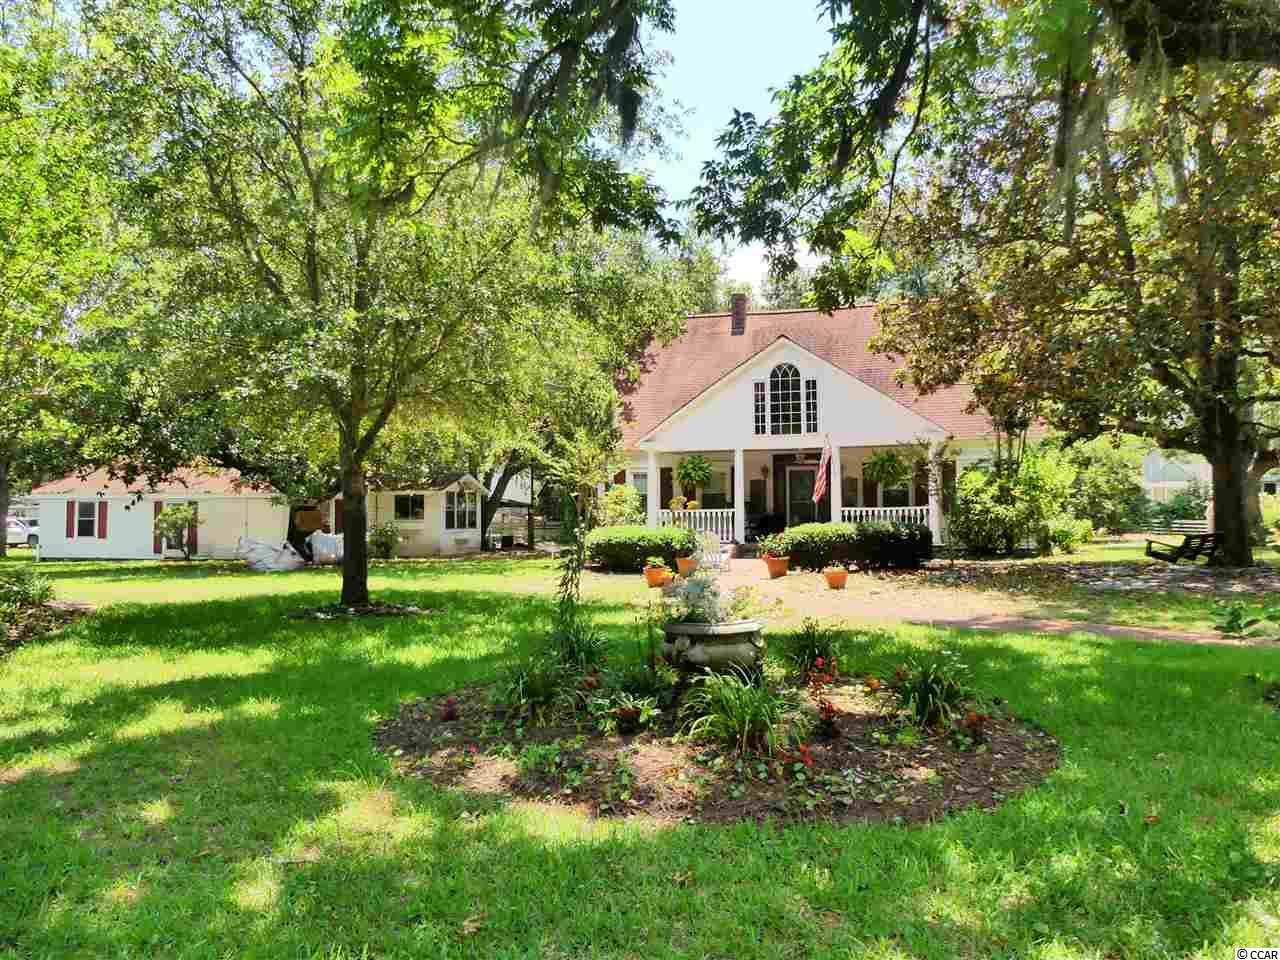 Historic Elegance in the heart of Murrells Inlet, SC! This southern masterpiece built in the late 1800s and officially recorded at the court house in 1902 is perhaps one of the first homes ever built in the old historic fishing village of Murrells Inlet. The charming home at 4400 Murrells Inlet Road boasts over 2,200 square feet of living space and is situated on what is quite possibly one of the largest remaining lots in 'The Inlet' (east of ocean highway) totaling 1.26 acres. Although this historic home was built over 100 years ago, it has been consistently upgraded over the years without losing its unique historic appeal. Some of the upgrades and unique features include civil war era wood beam, stained glass accents, custom copper ceiling, antique transoms from England, and so much more. The kitchen has been updated with modern touches such as an upscale Viking range and Bosch Dishwasher. The kitchen seamlessly flows into the dining area overlooking the living room and spacious sitting area extending out to a spacious screened porch. Immerse yourself in the park-like setting you will soon call home. *** Please Ask Your Realtor for a detailed history of the property *** MORE INFORMATION AVAILABLE THAT'S NOT LISTED ON THE MLS ***